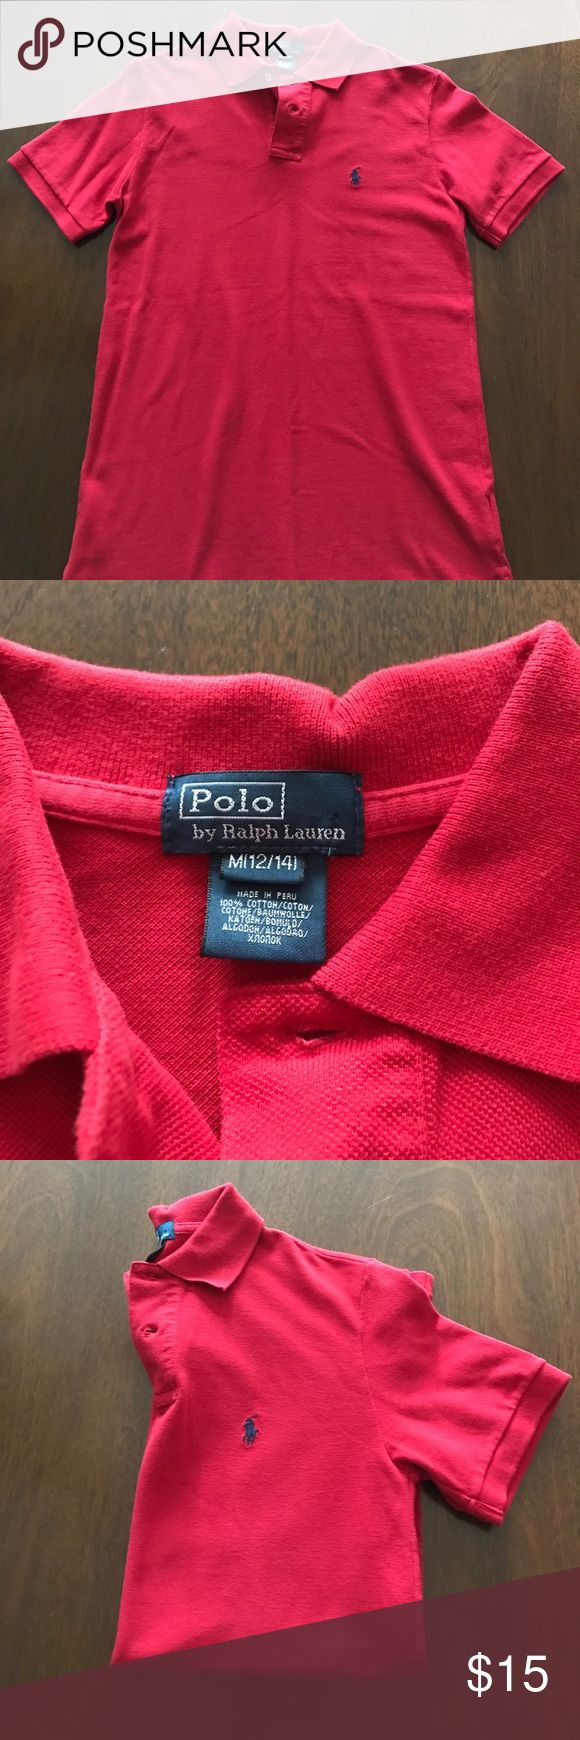 Boys POLO Ralph Lauren Polo Boys POLO Ralph Lauren short sleeve polo.  Red. Size M 12/14. Excellent used condition. Polo by Ralph Lauren Shirts & Tops Polos